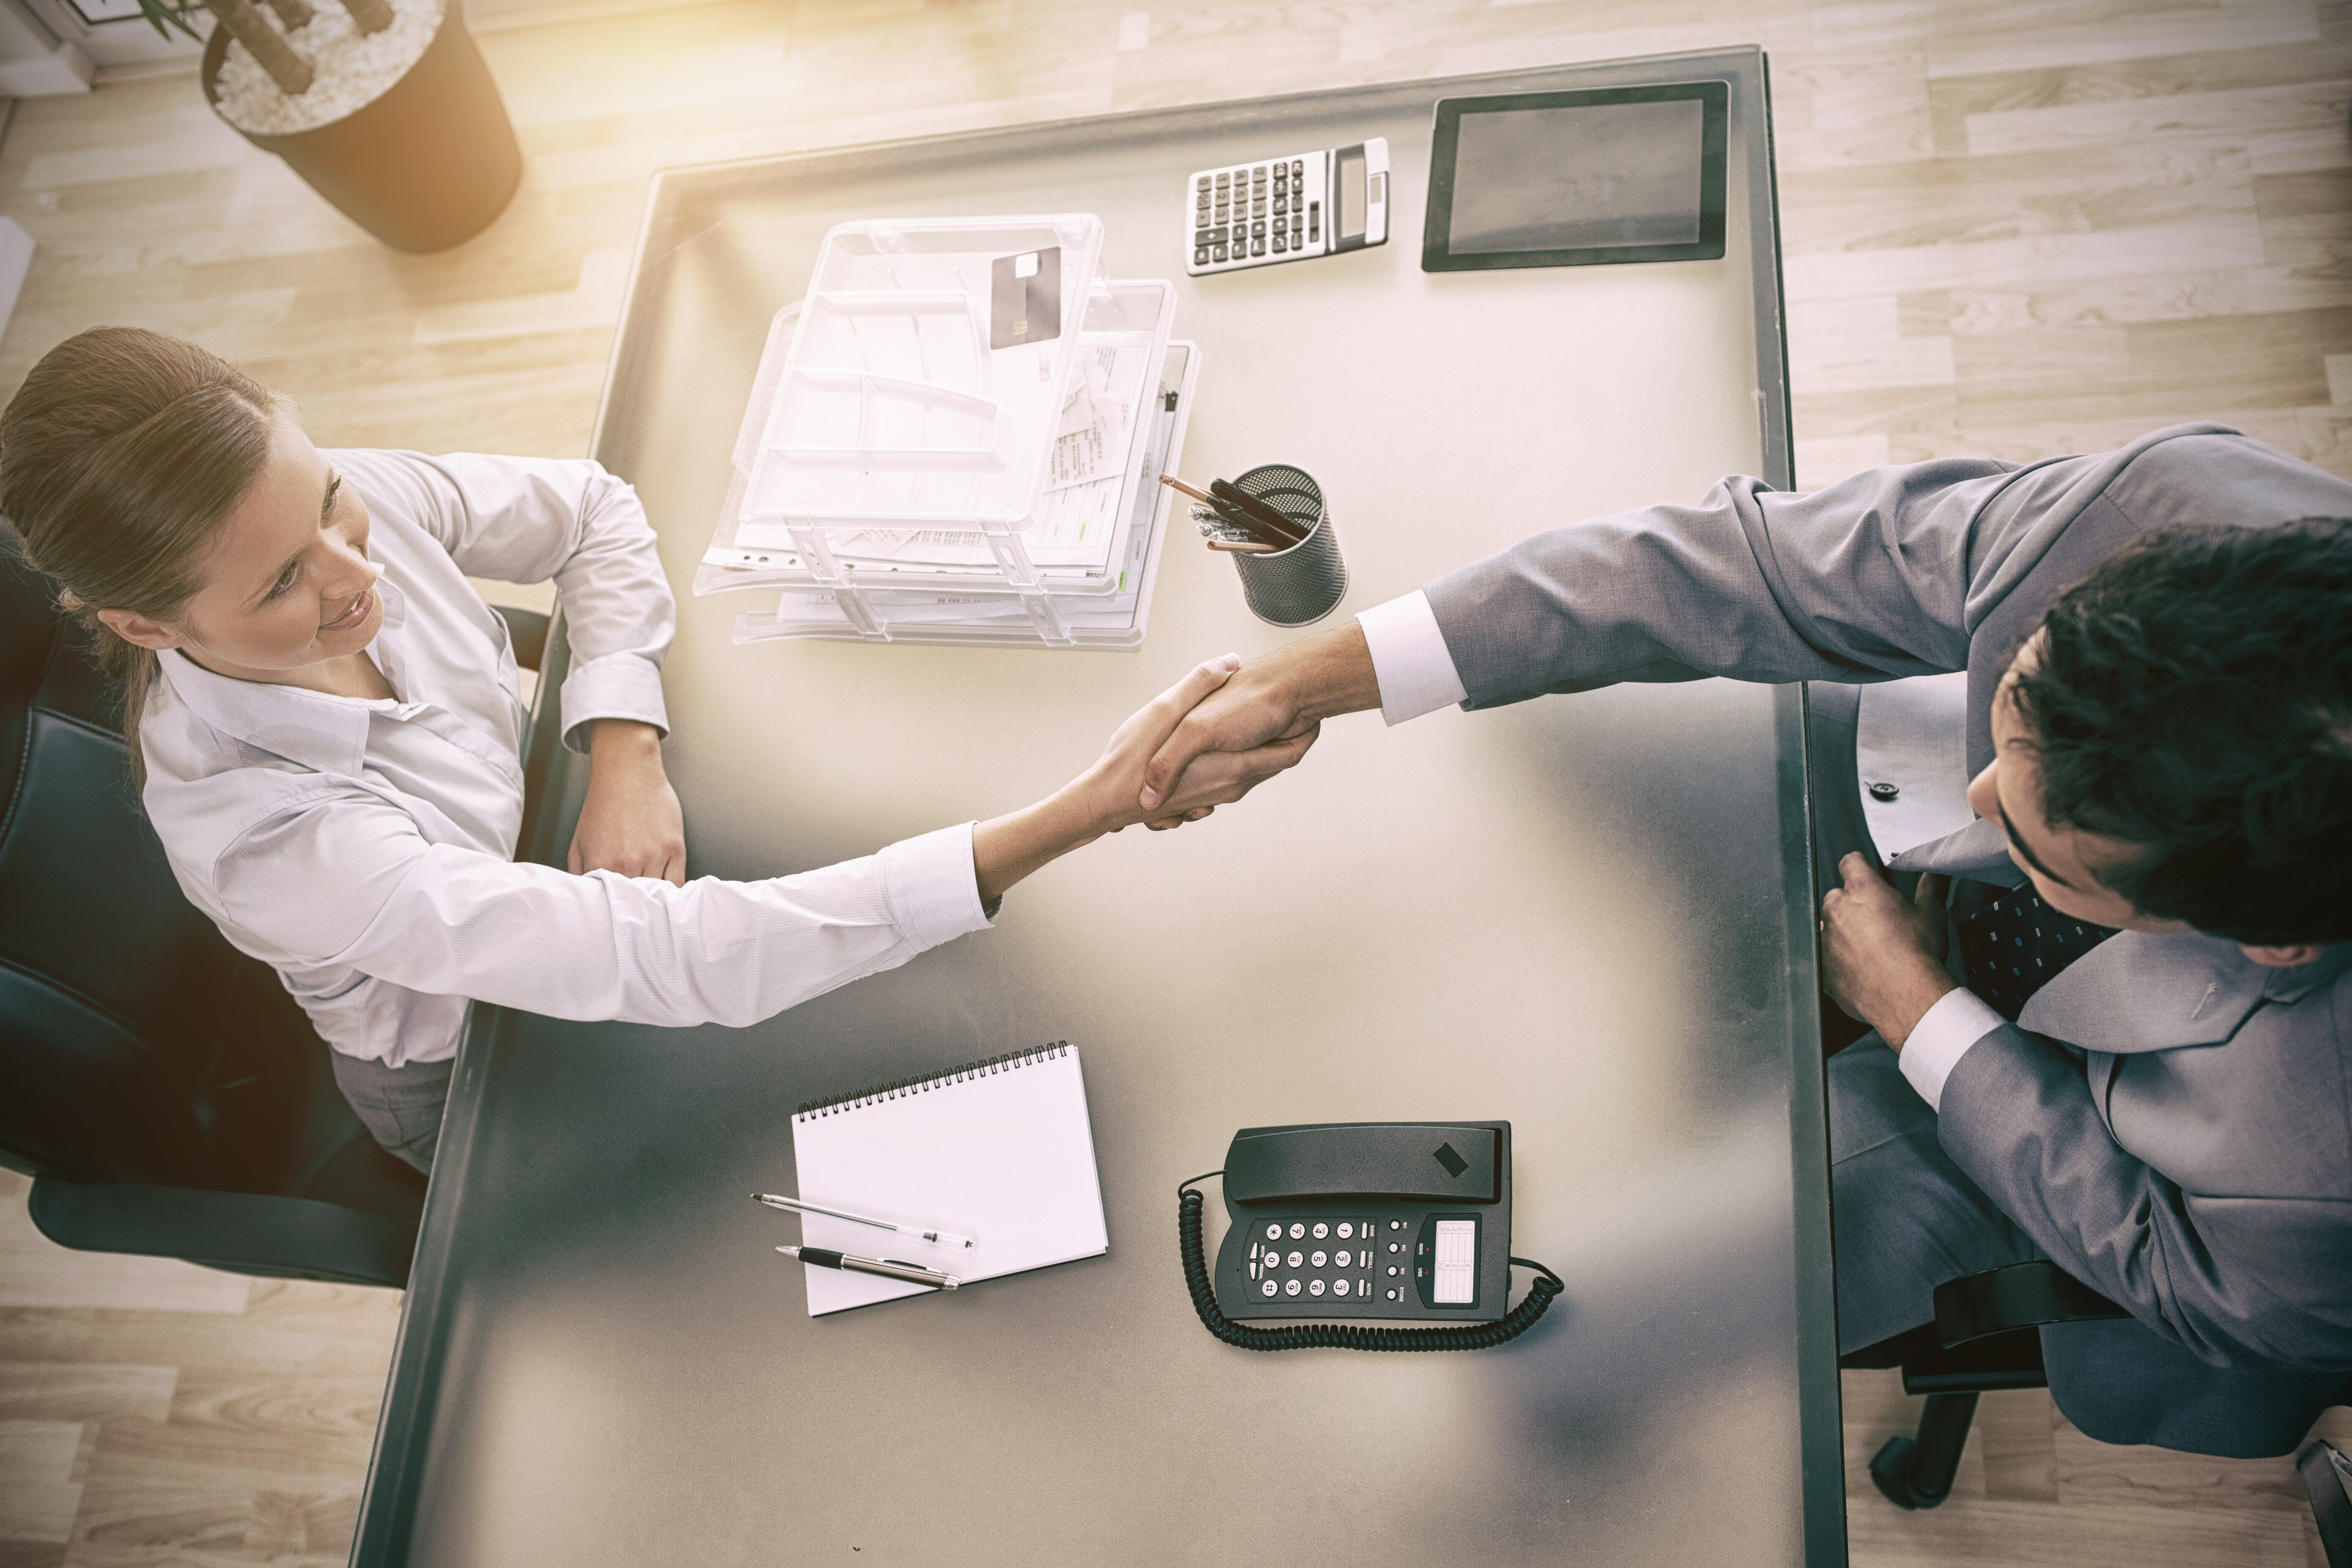 Aerial view of a modern business meeting between a man and a woman, shaking hands from two opposing sides of a desk.